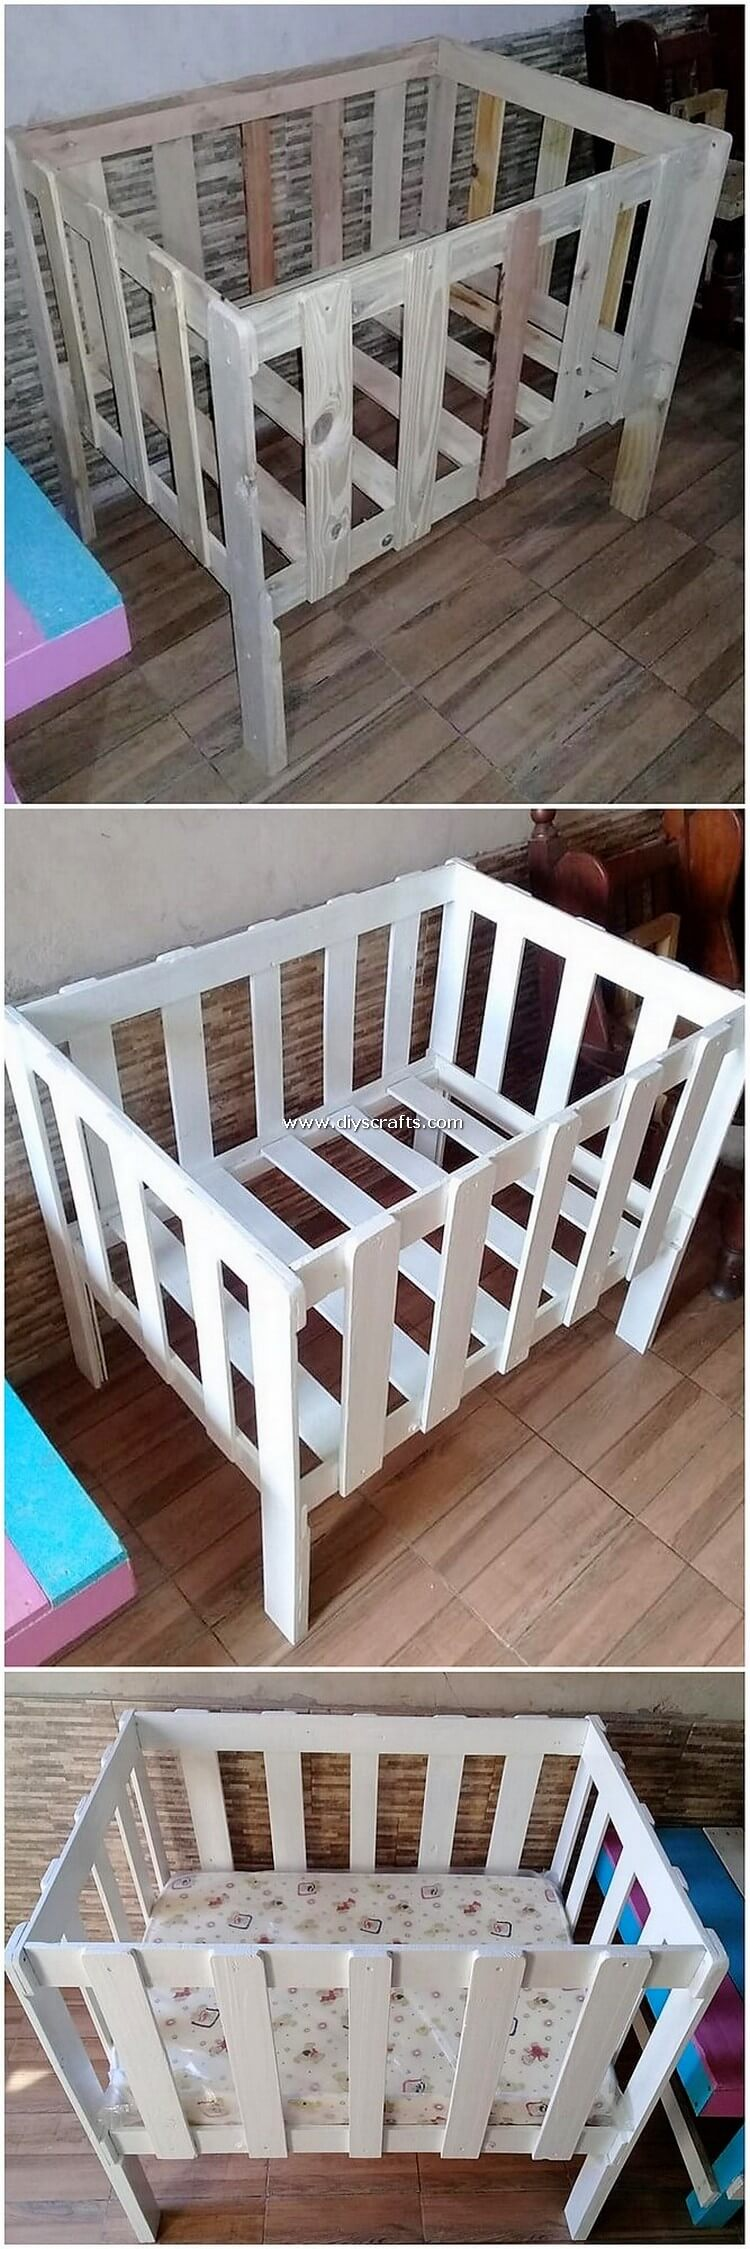 Pallet-Bed-for-Babies